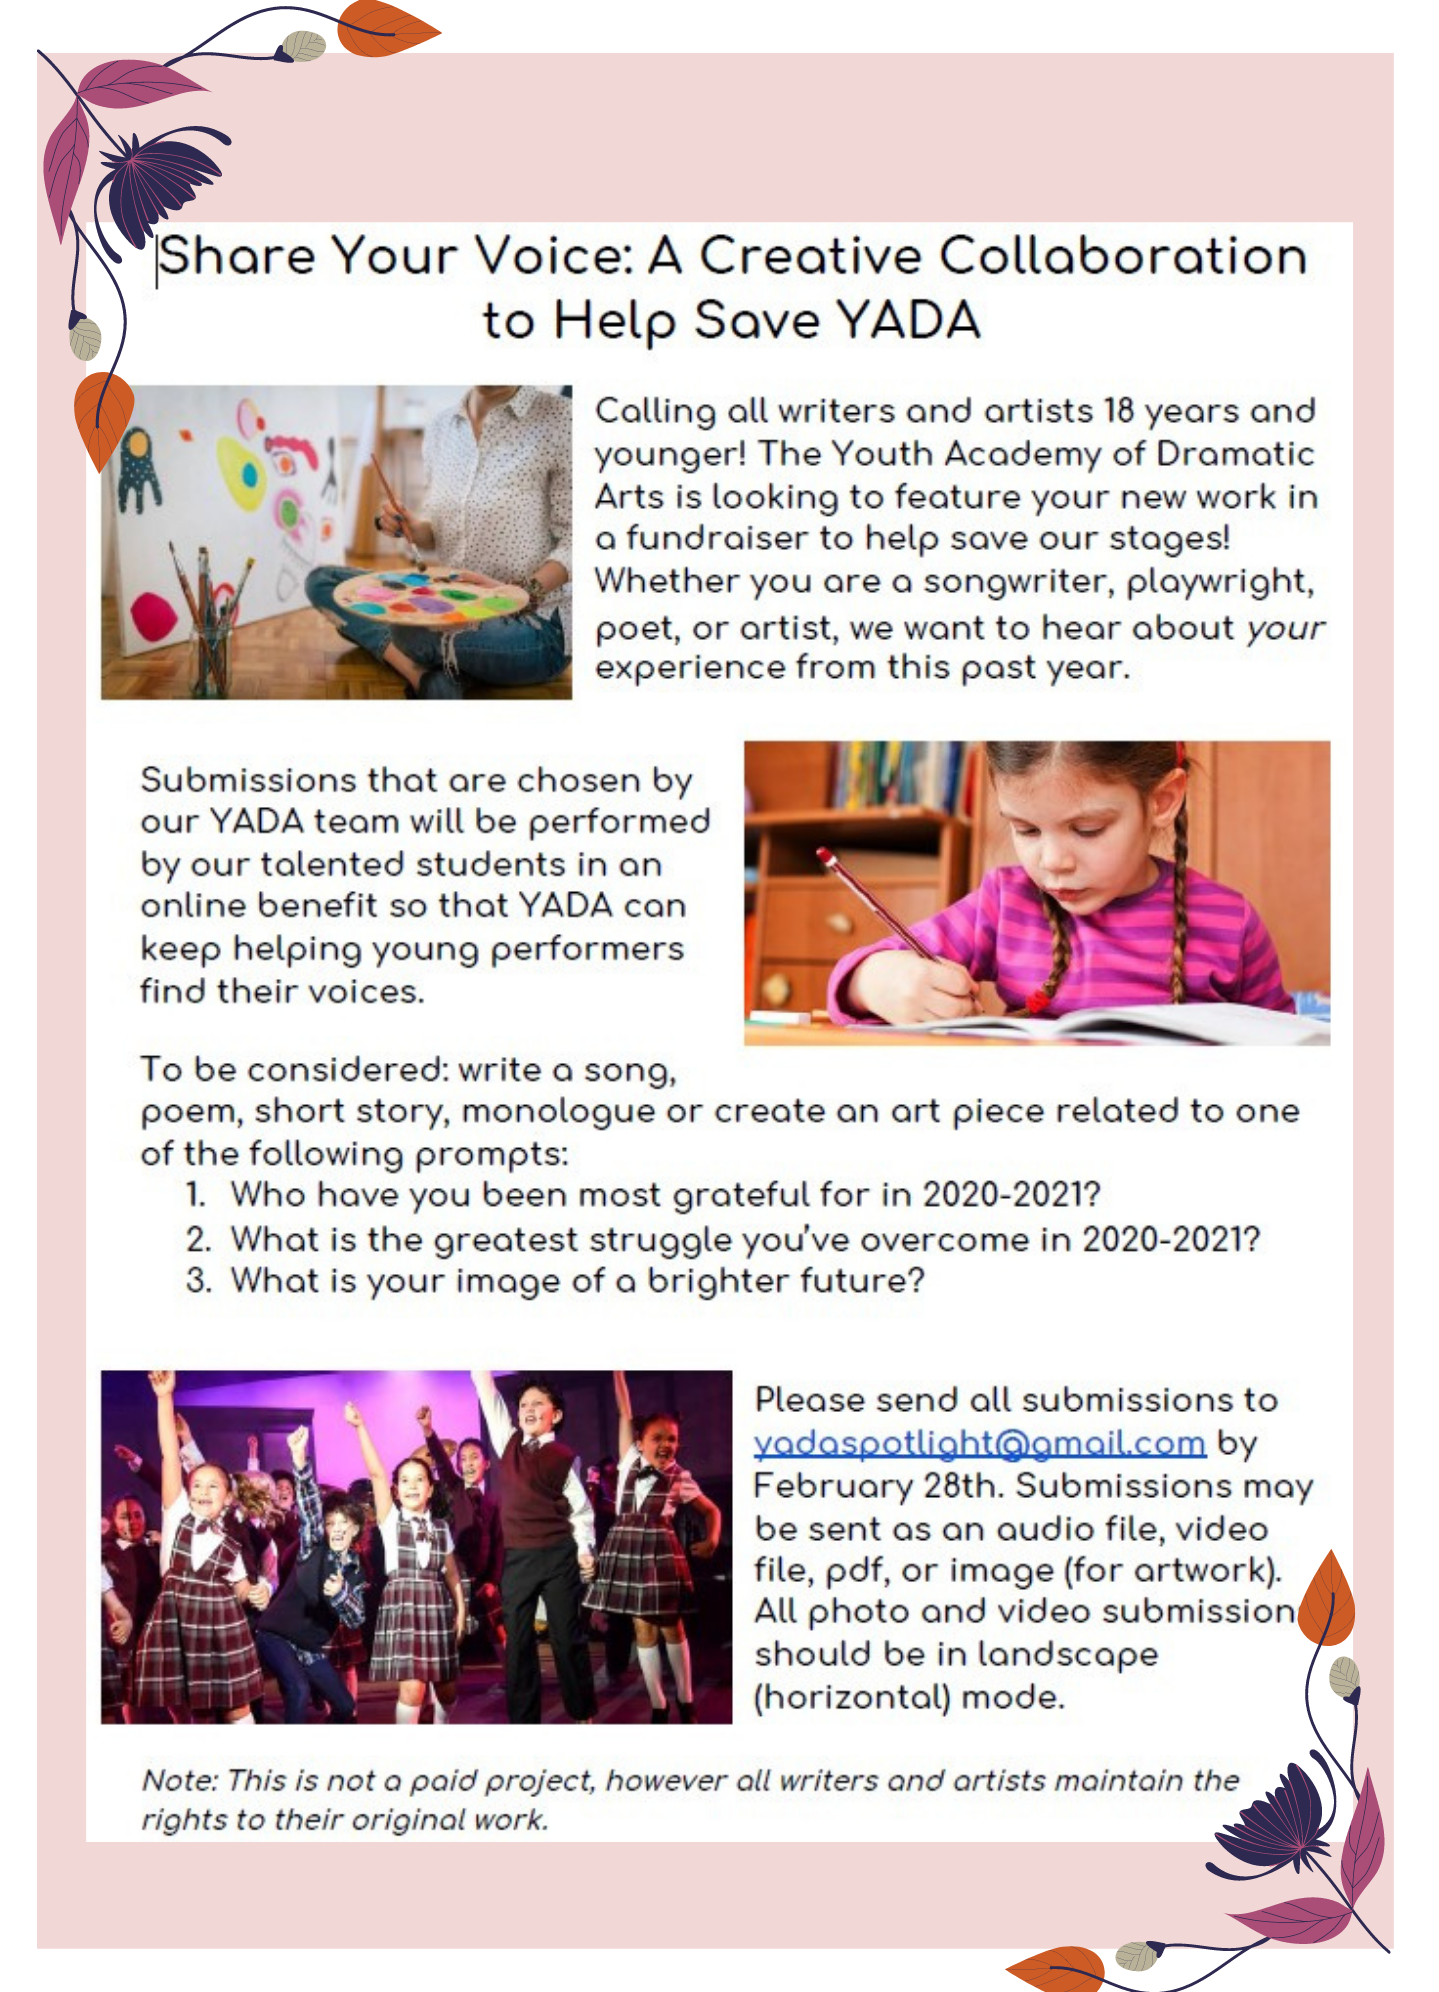 Share Your Voice_ A Creative Collaboration to Help Save YADA 2021